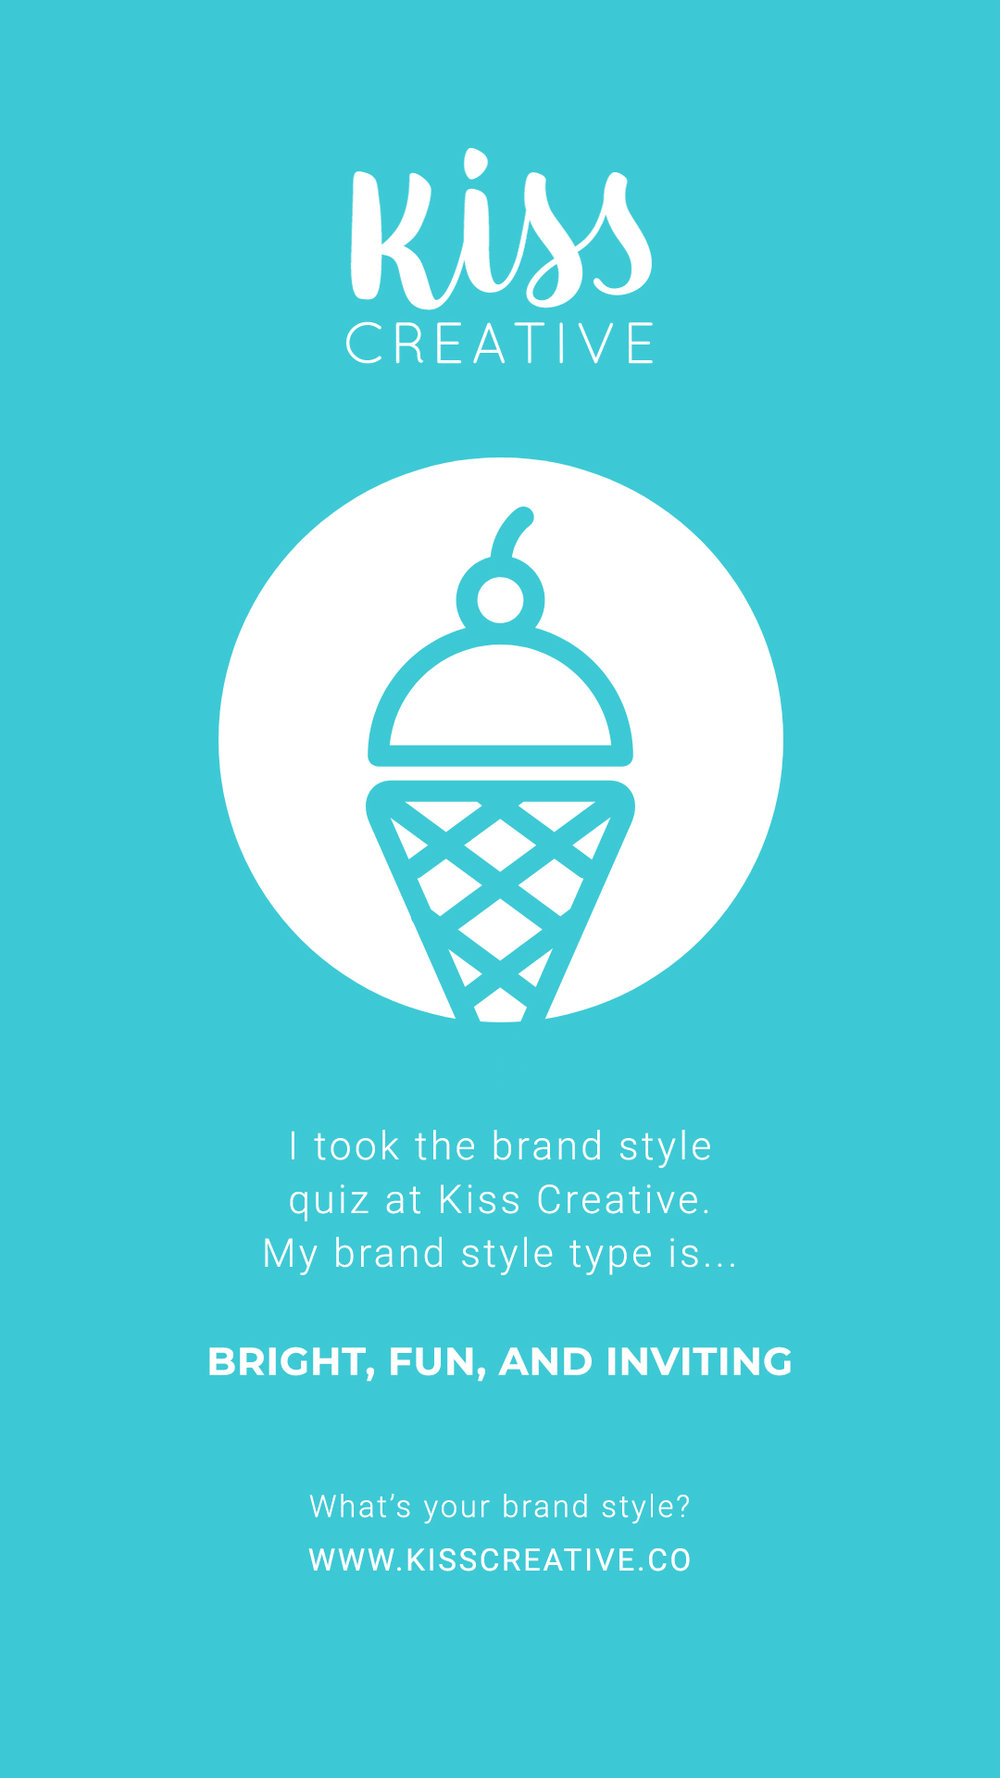 I took the Kiss Creative brand style quiz and I got Bright, Fun, and Inviting!